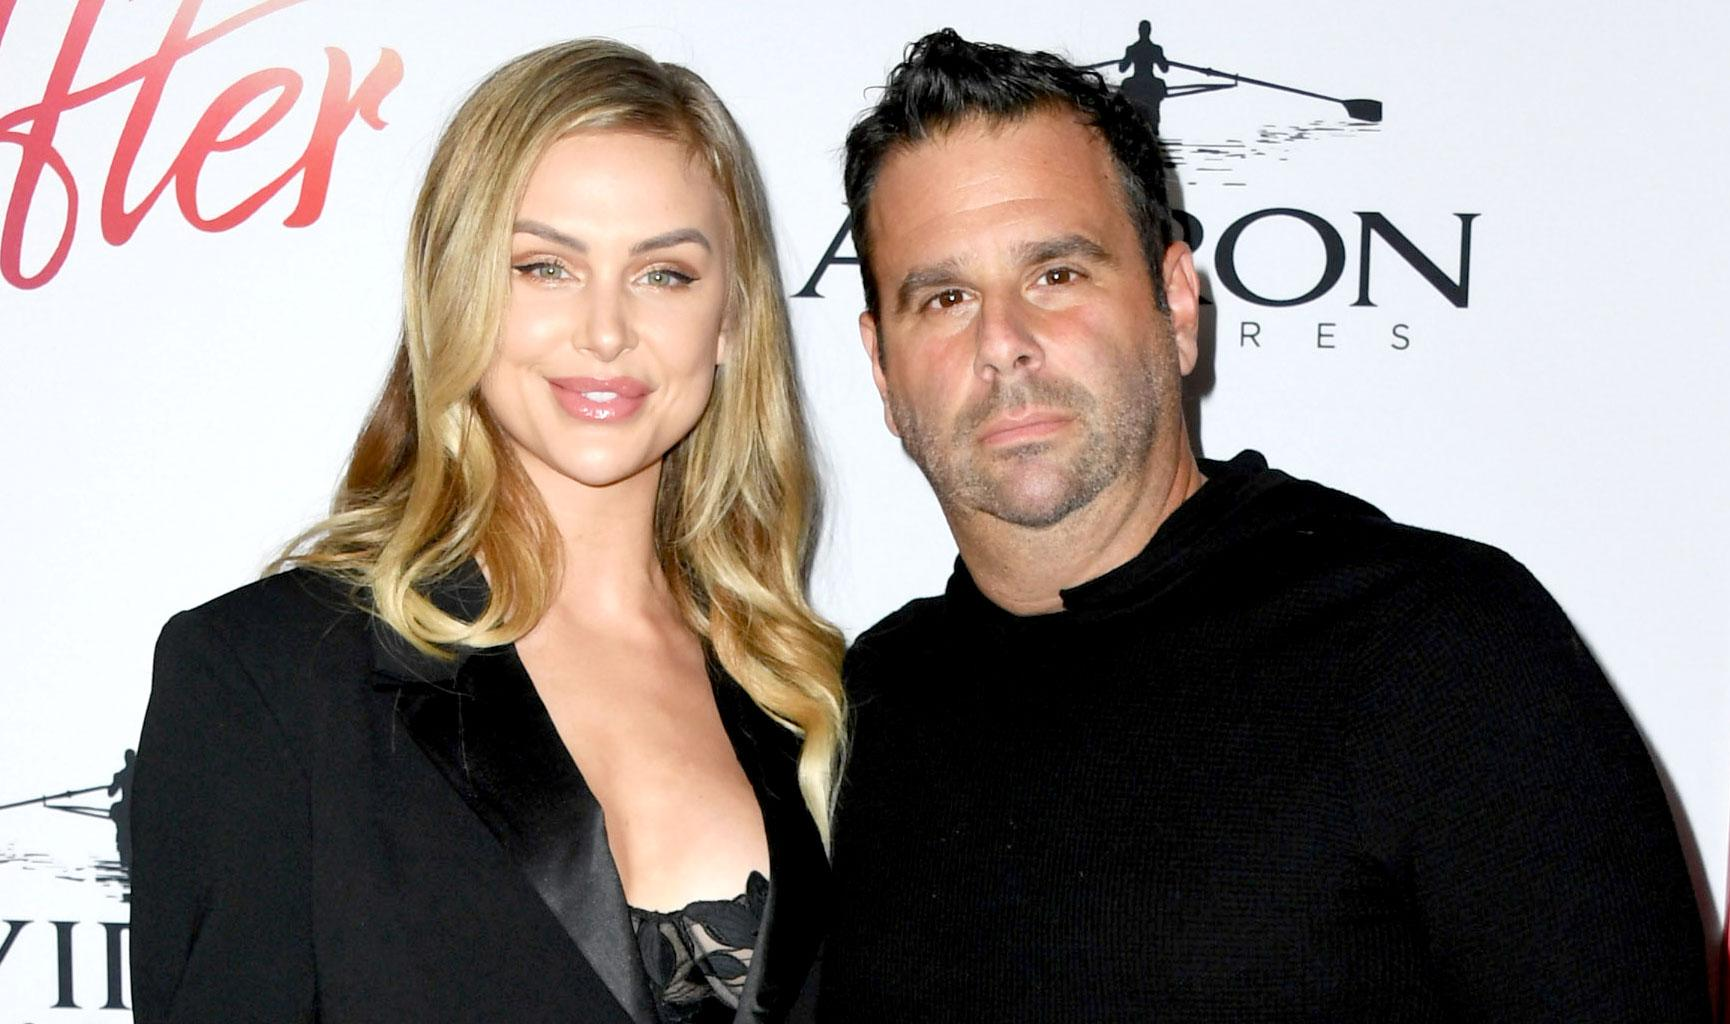 Lala Kent Wants To Plan Her Own Bachelorette Party And She Is Cutting The Guest List Already!